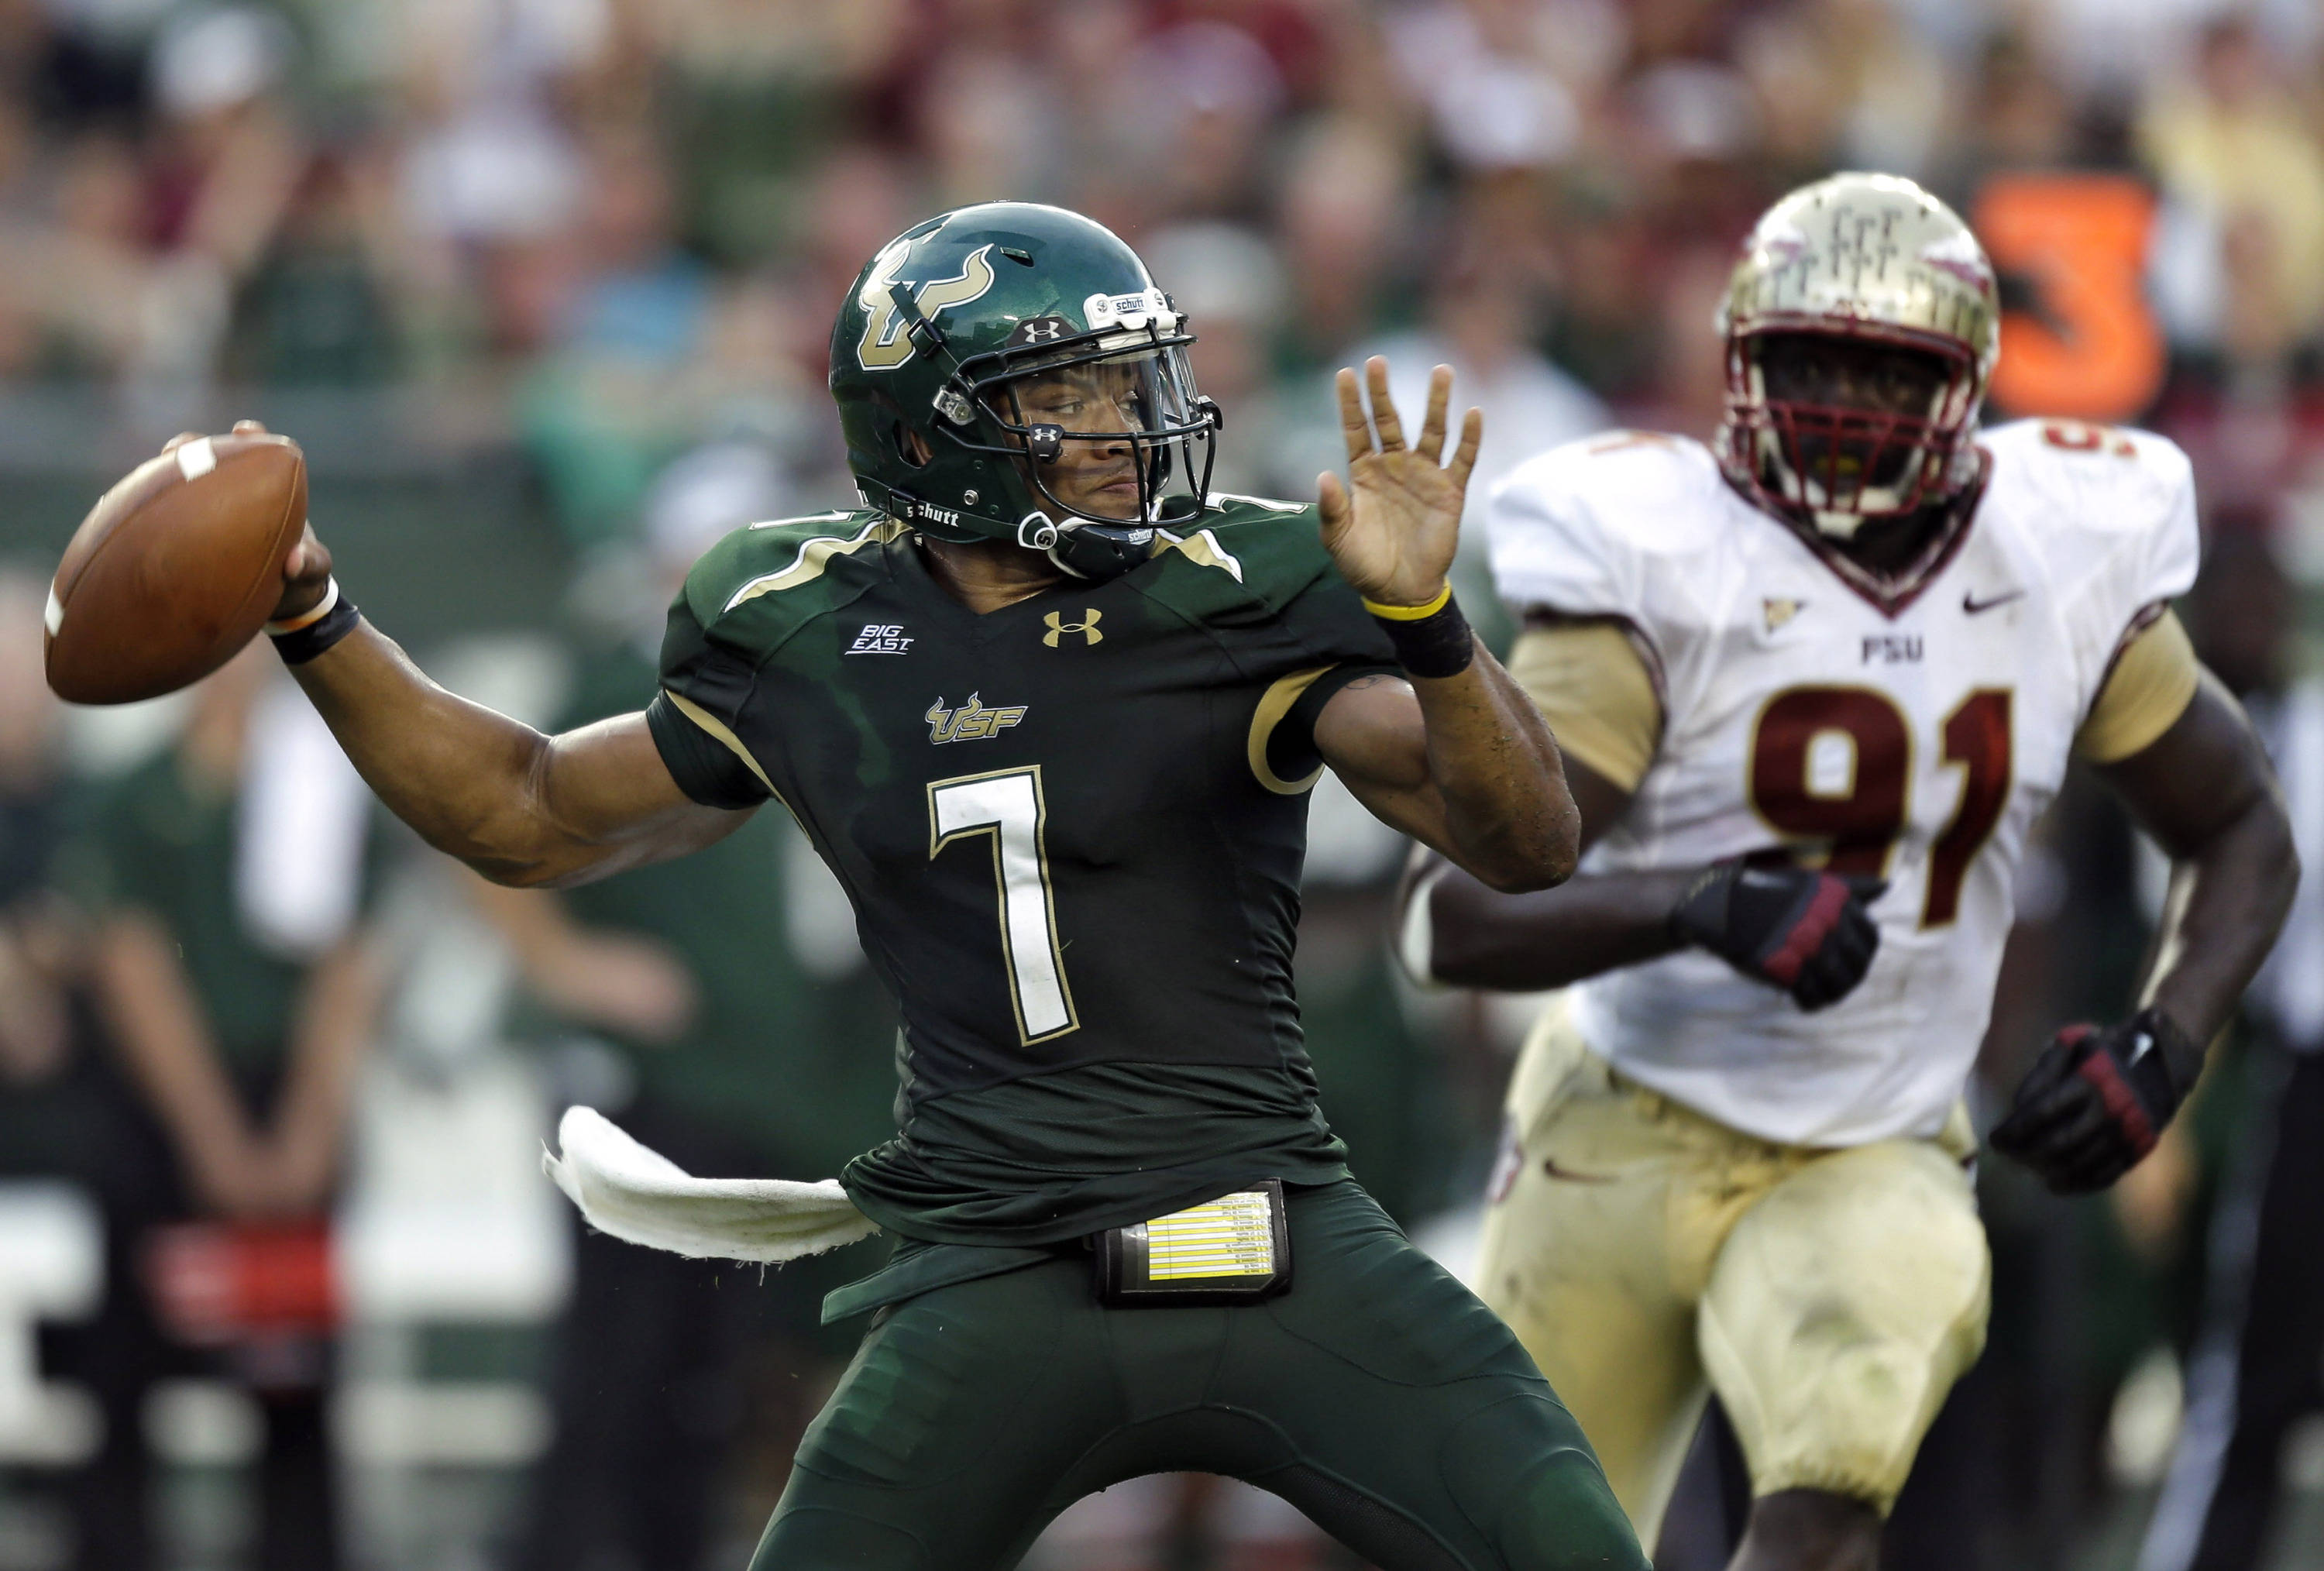 South Florida quarterback B.J. Daniels (7) fires a pass as he is pressured by Florida State defensive end Cornellius Carradine (91) during the first quarter. (AP Photo/Chris O'Meara)